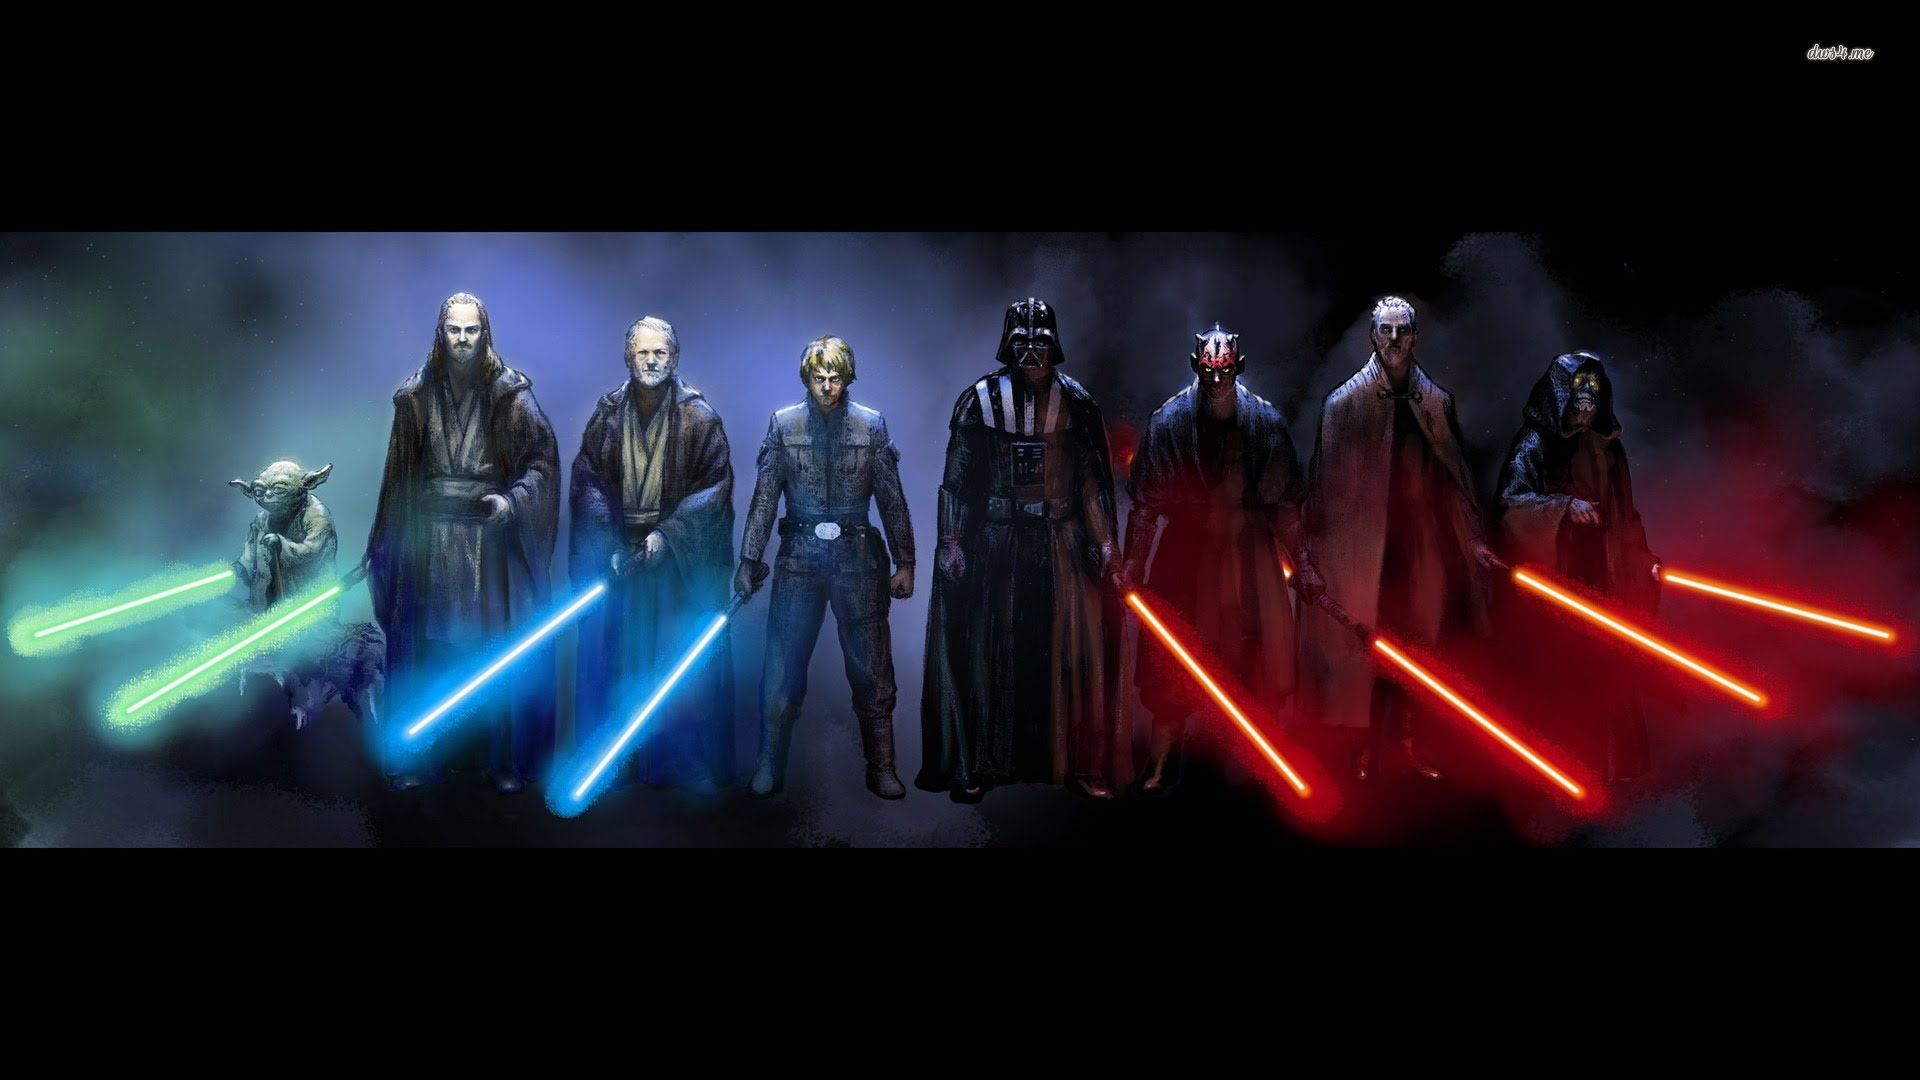 Star Wars Wallpaper For Pc Best Wallpaper Hd Star Wars Sith Star Wars Pictures Star Wars Images